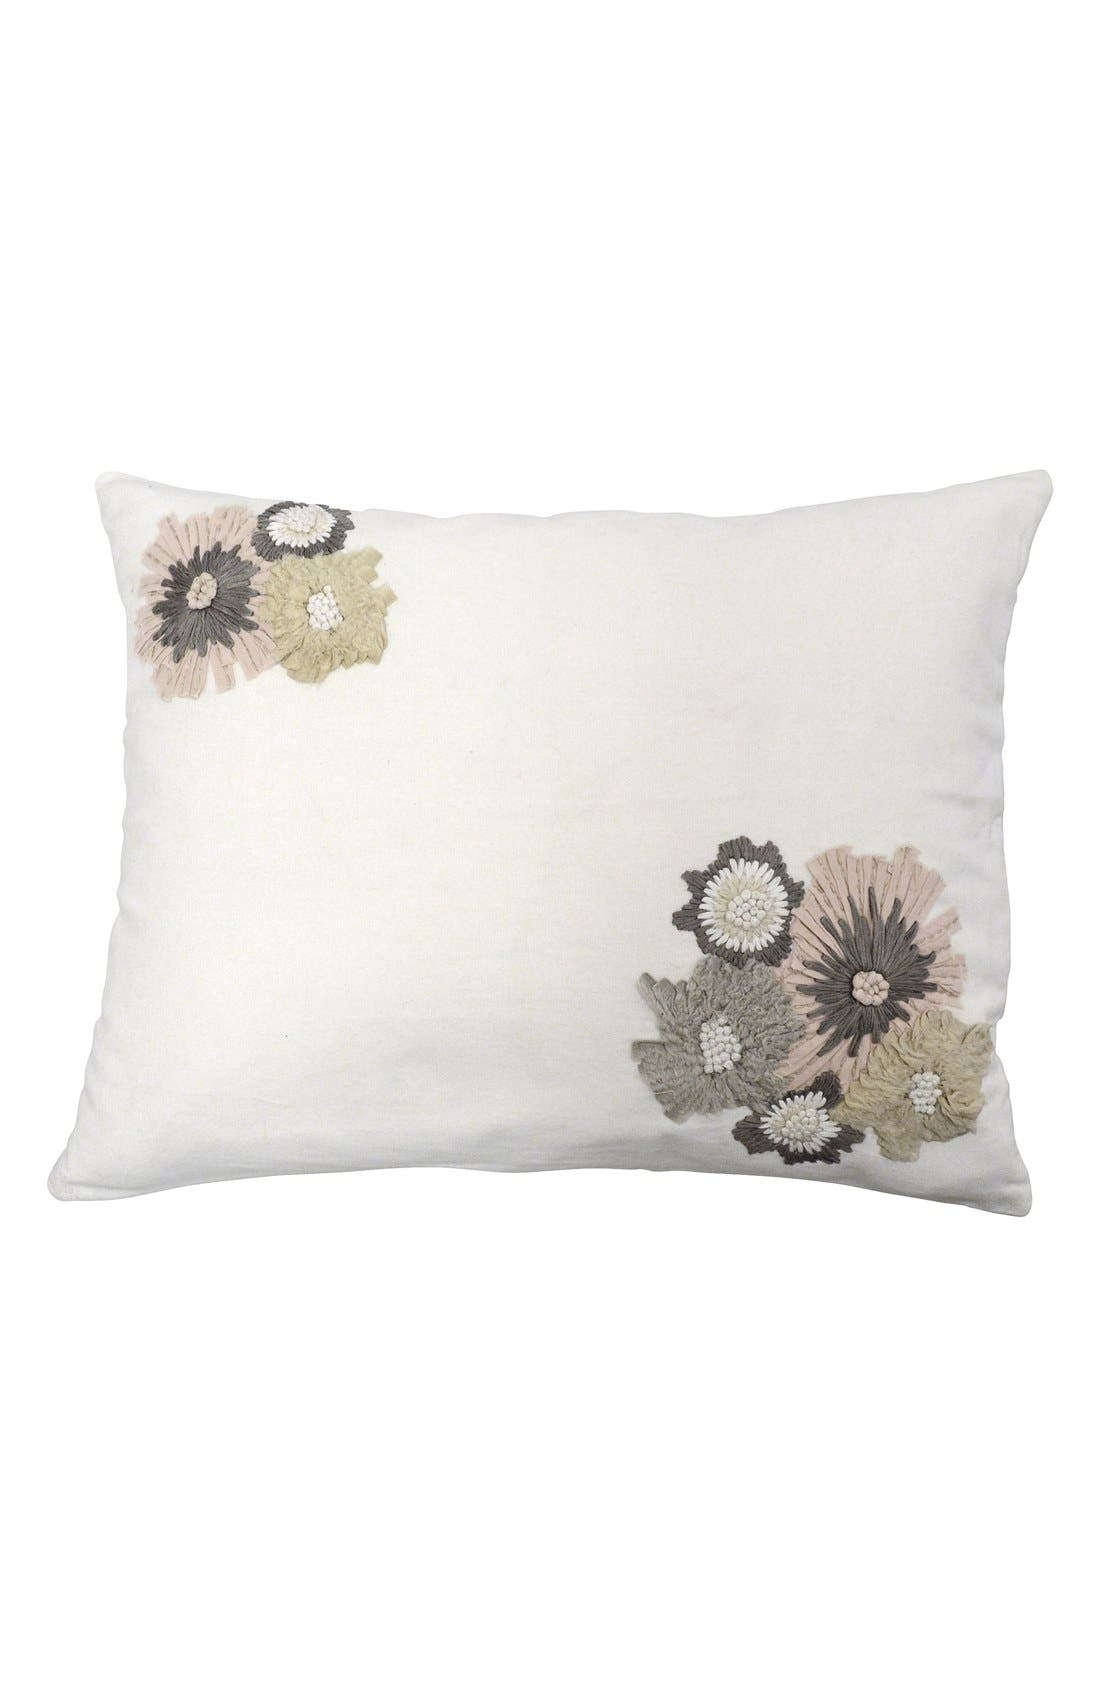 Alternate Image 1 Selected - DKNY 'Pure Indulge' Floral Pillow